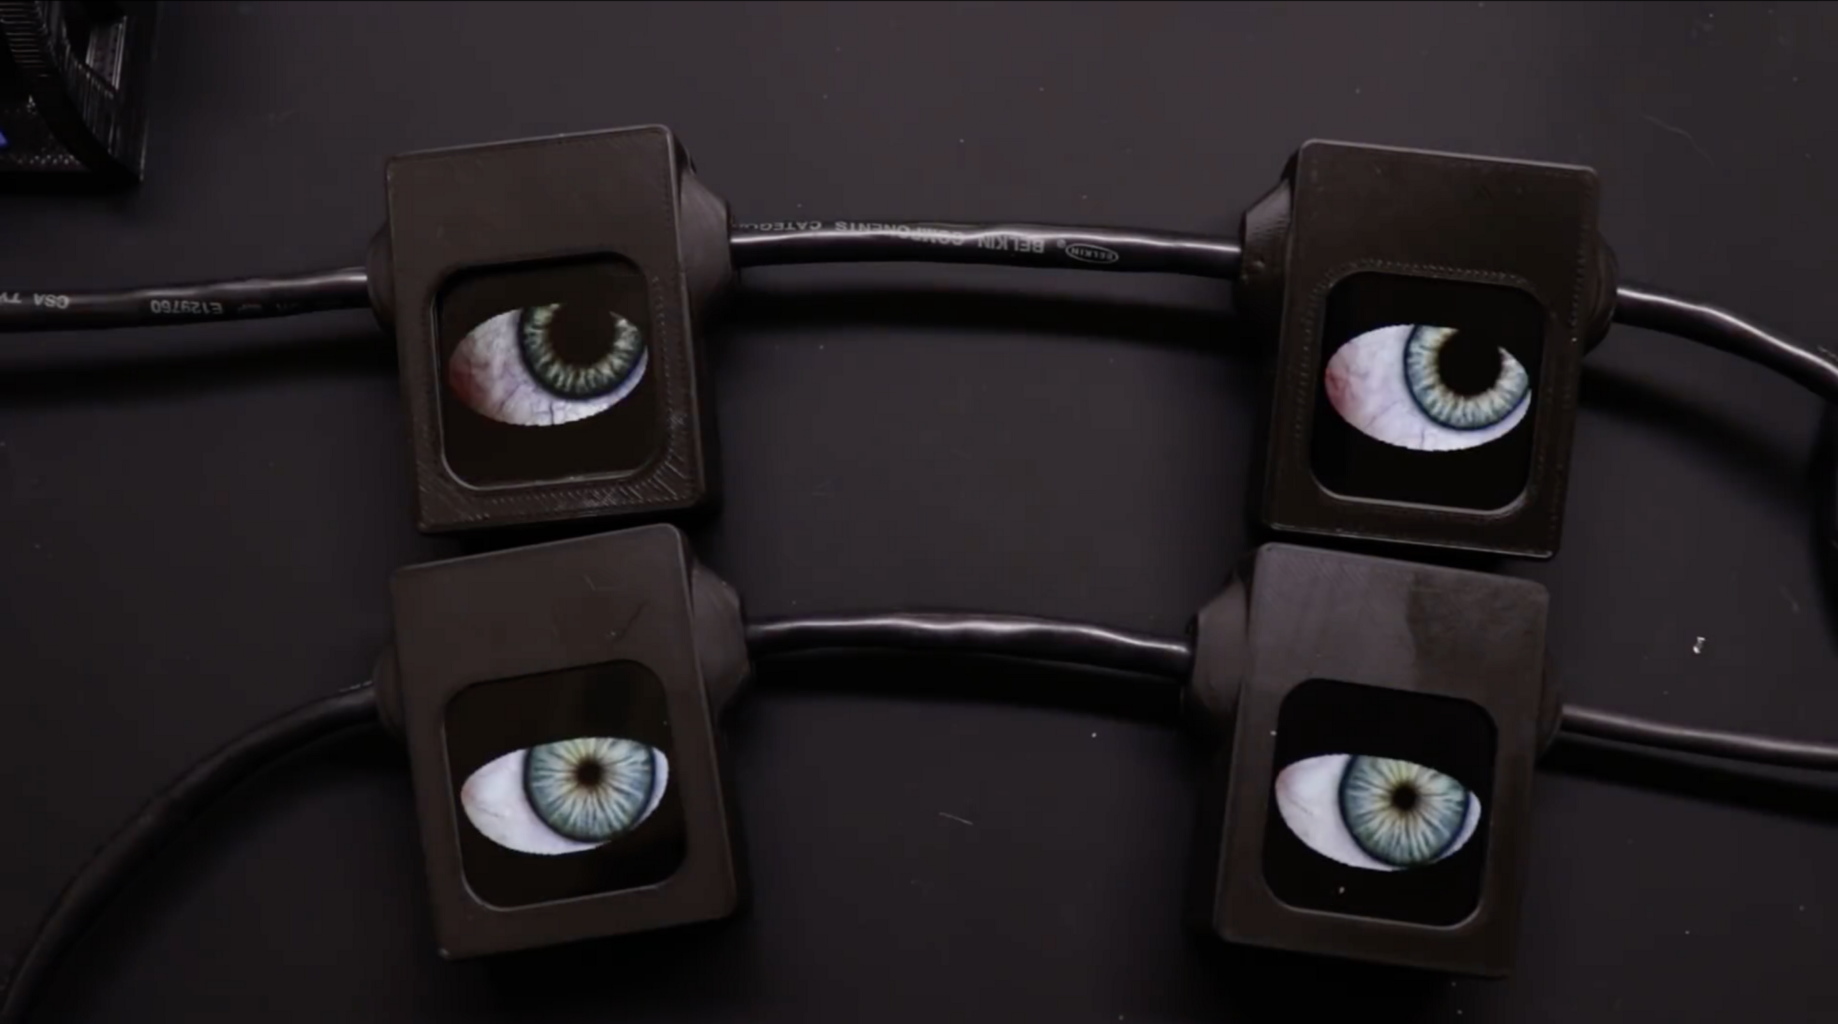 Chain of Animated Eyes Blink Creepily from Hiding - Hackster Blog